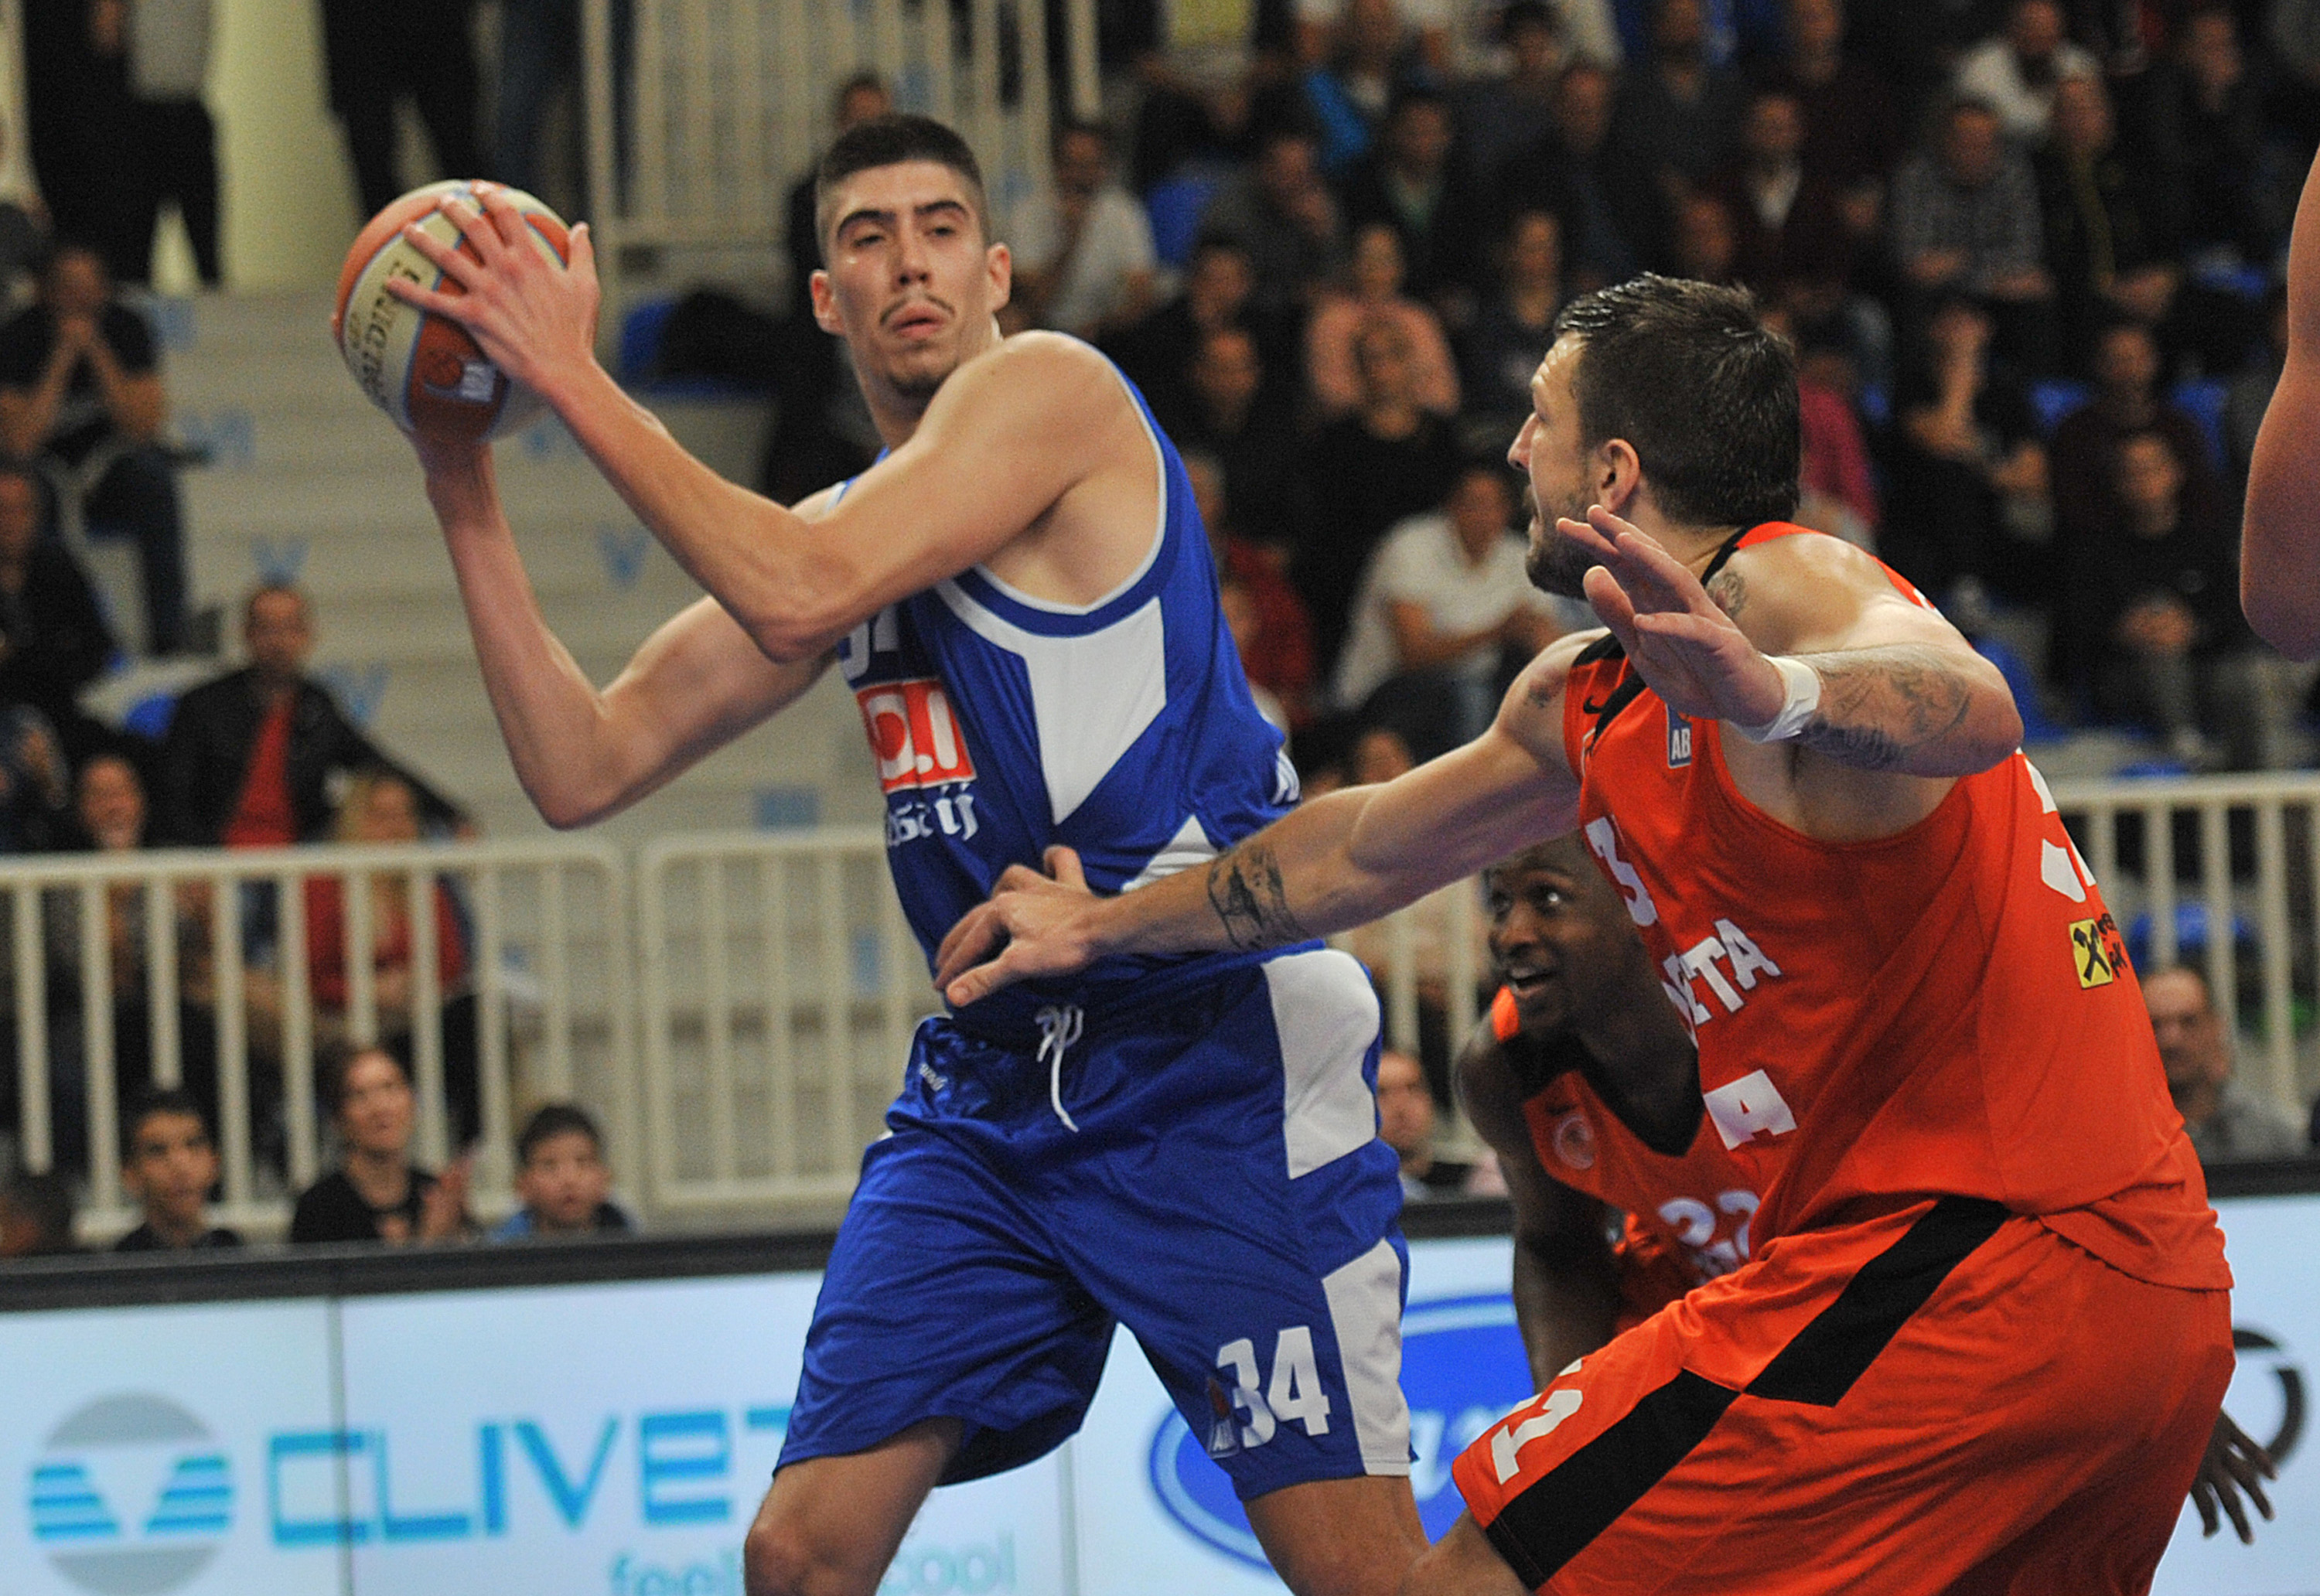 EC: Cedevita looking for the 1st win, Budućnost can book a ticket for the next stage